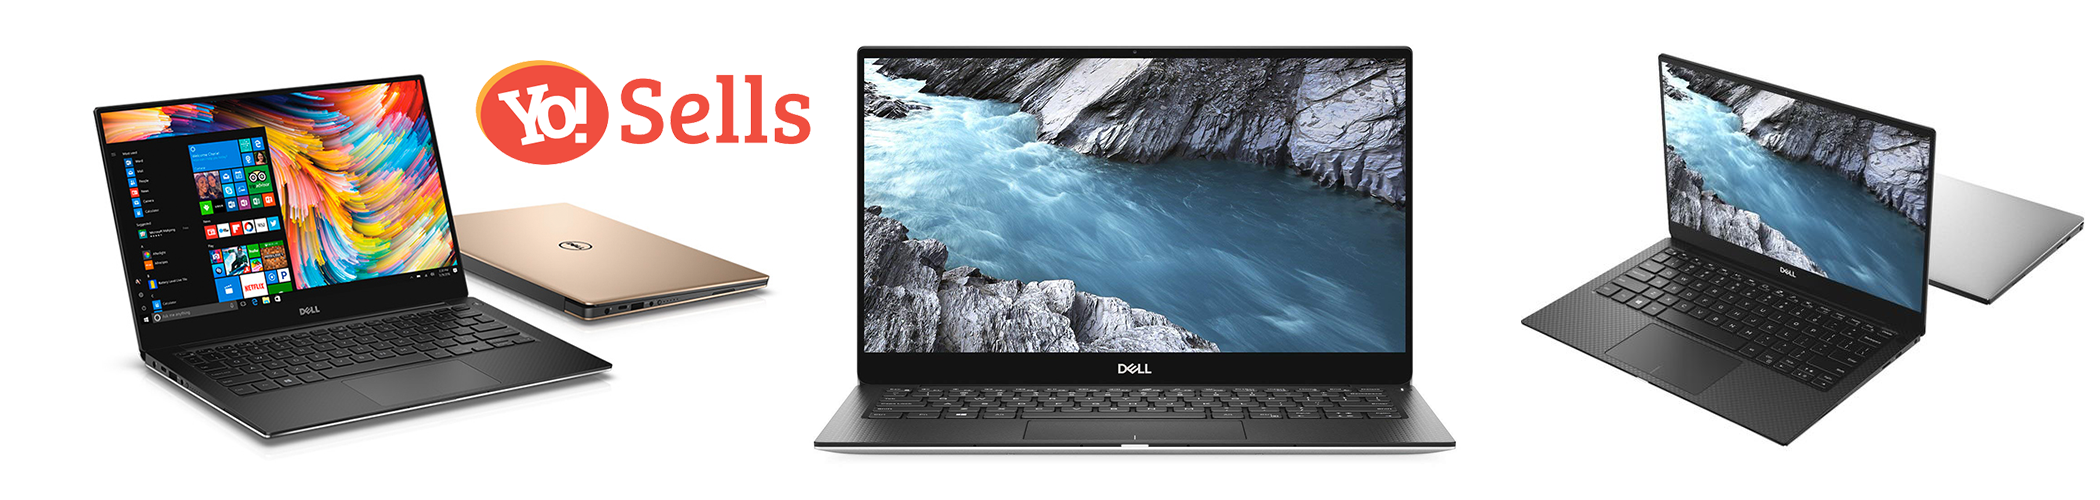 10 Dell XPS 13 The best Laptops on Amazon (Top 10)